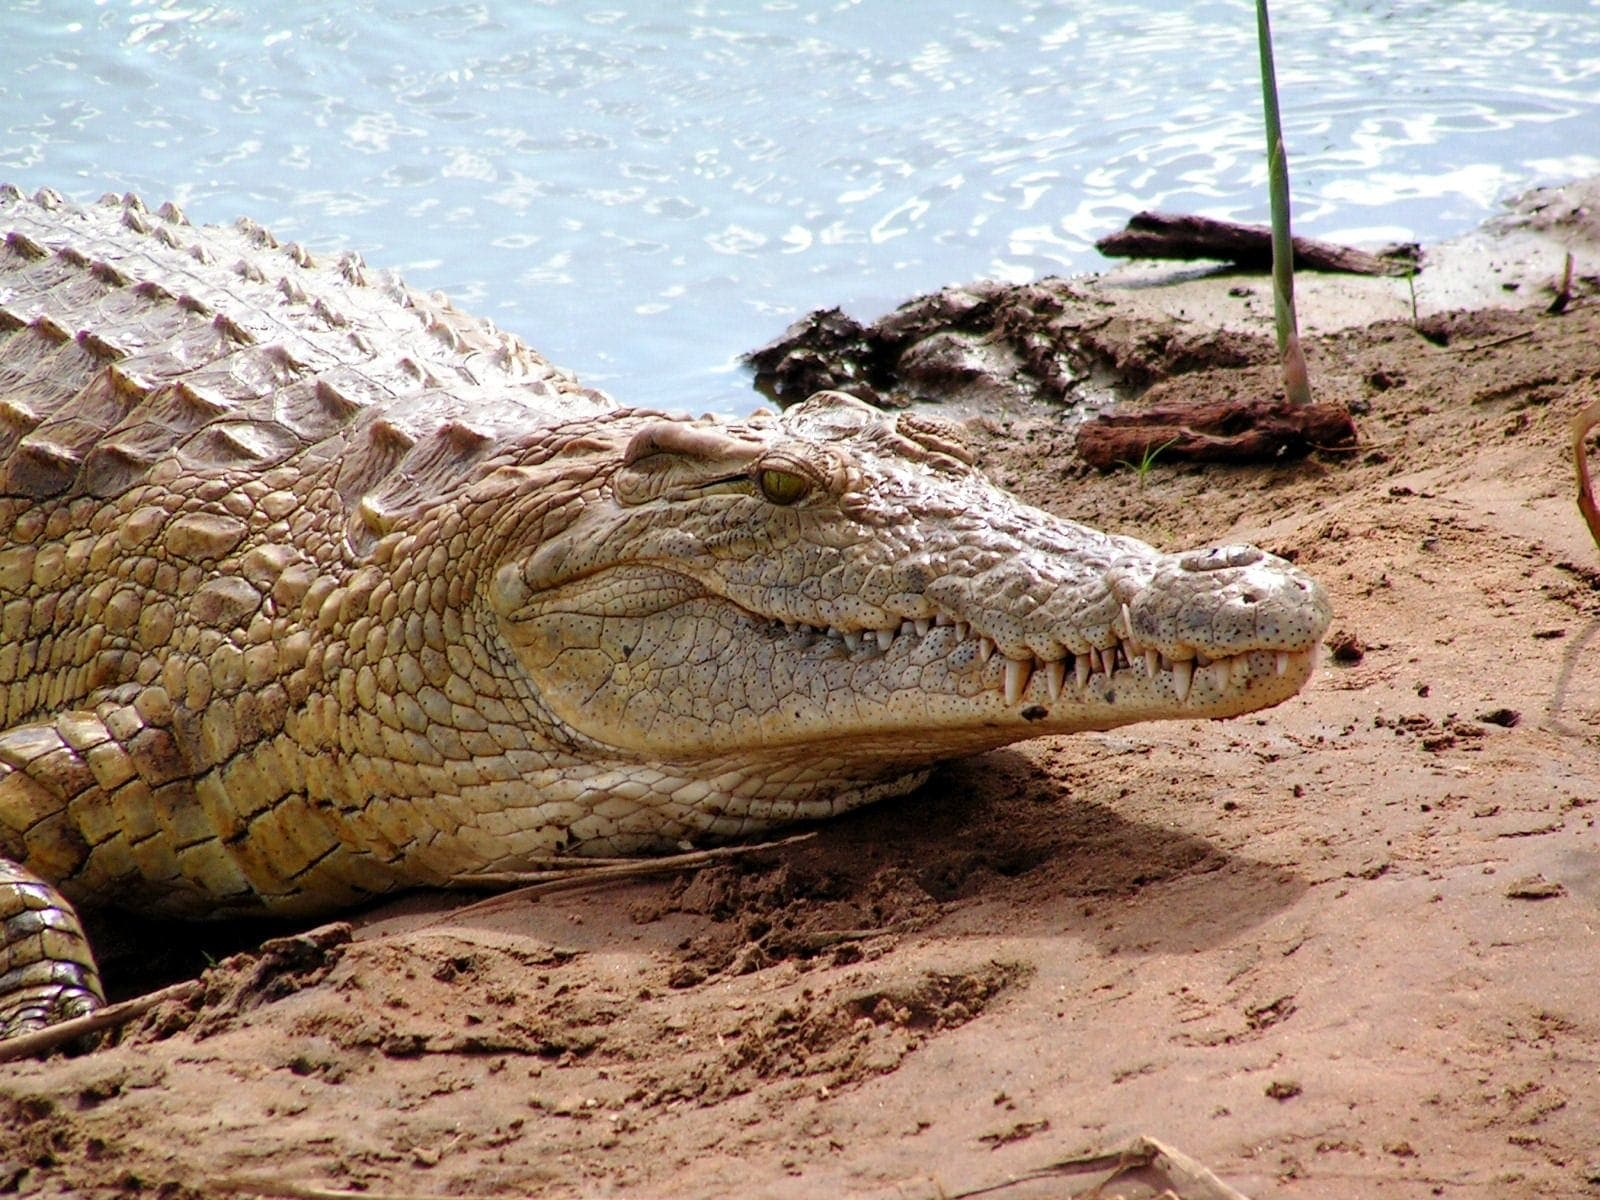 One of nature's toughest predators, crocodiles abound in Zambia's many lakes